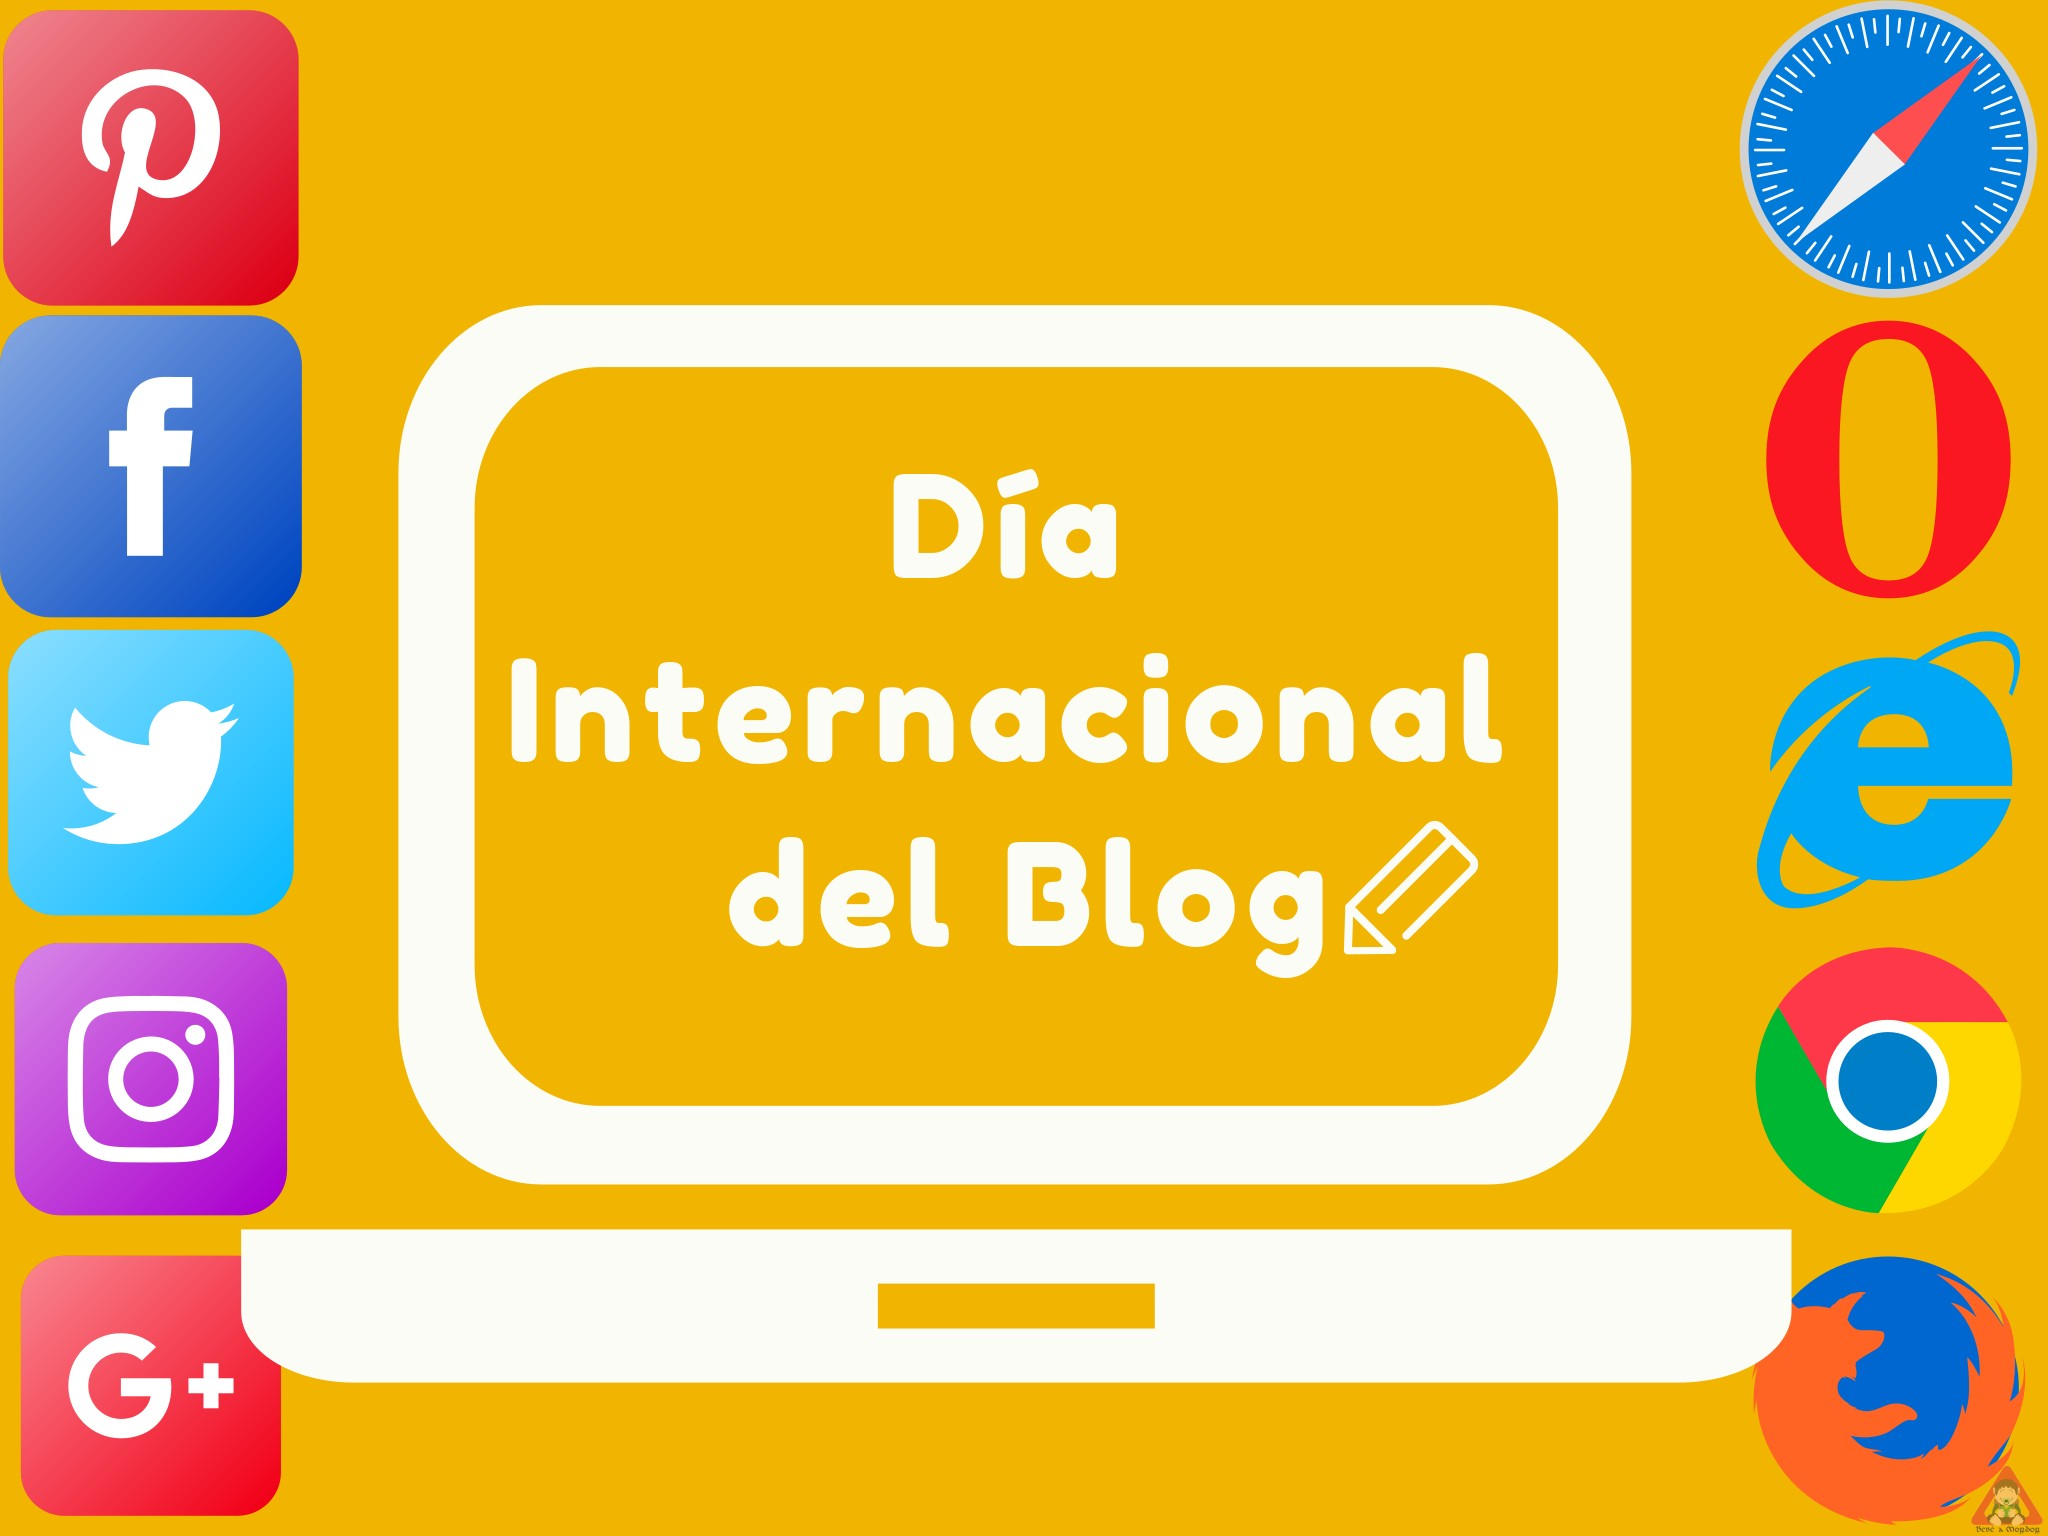 Día Internacional del Blog